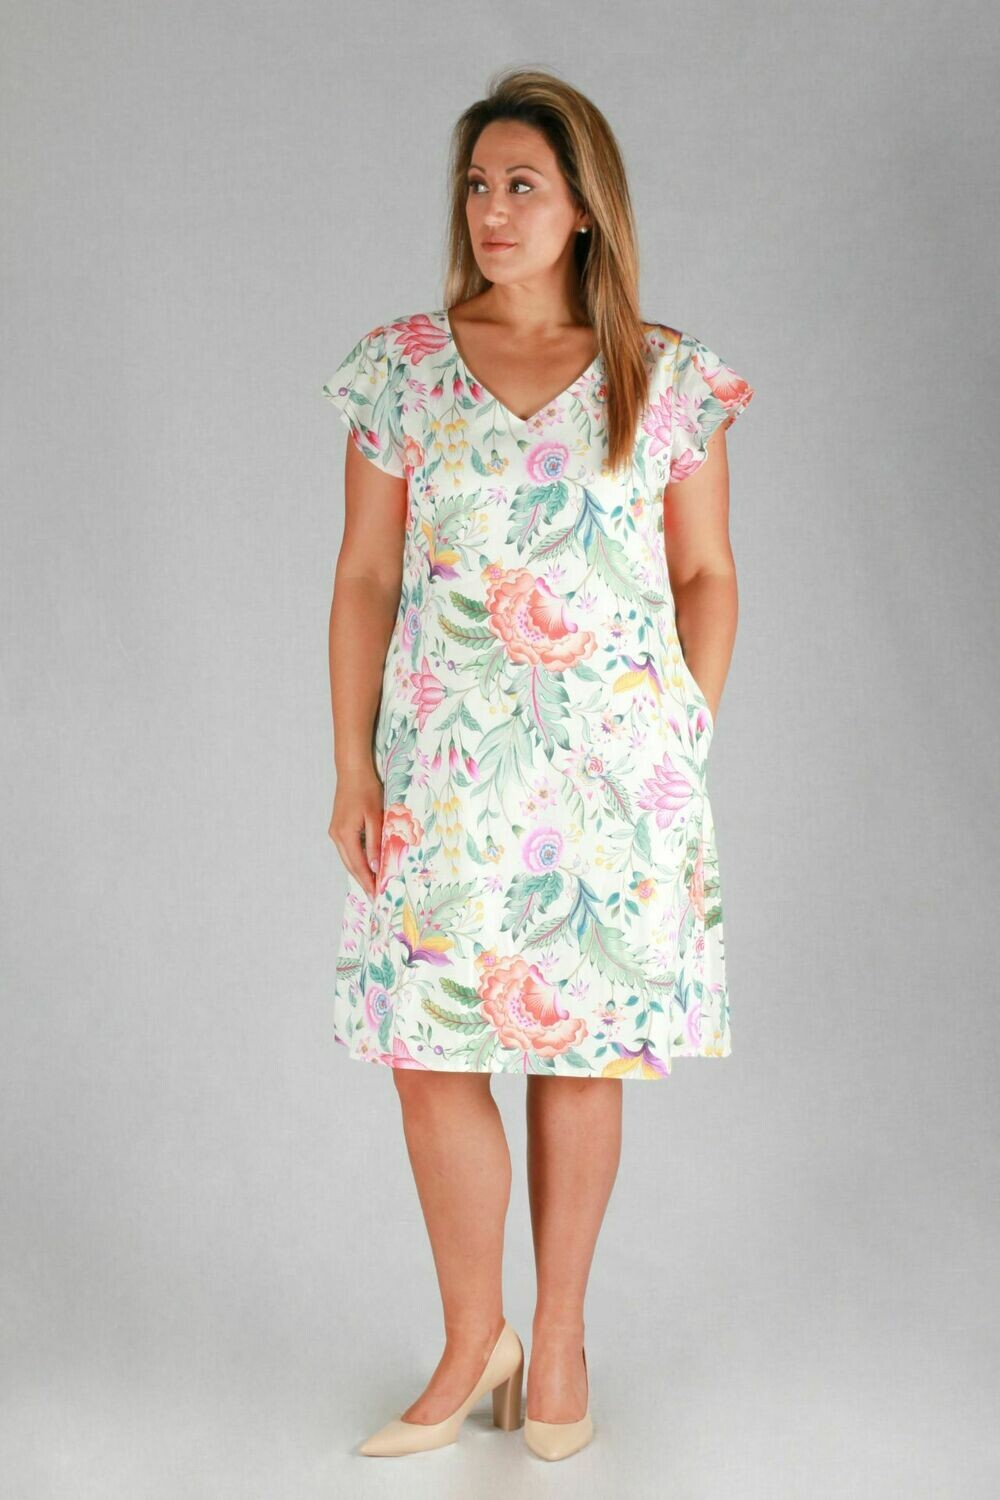 Andrea Lucy Designs Lady Melba Dress